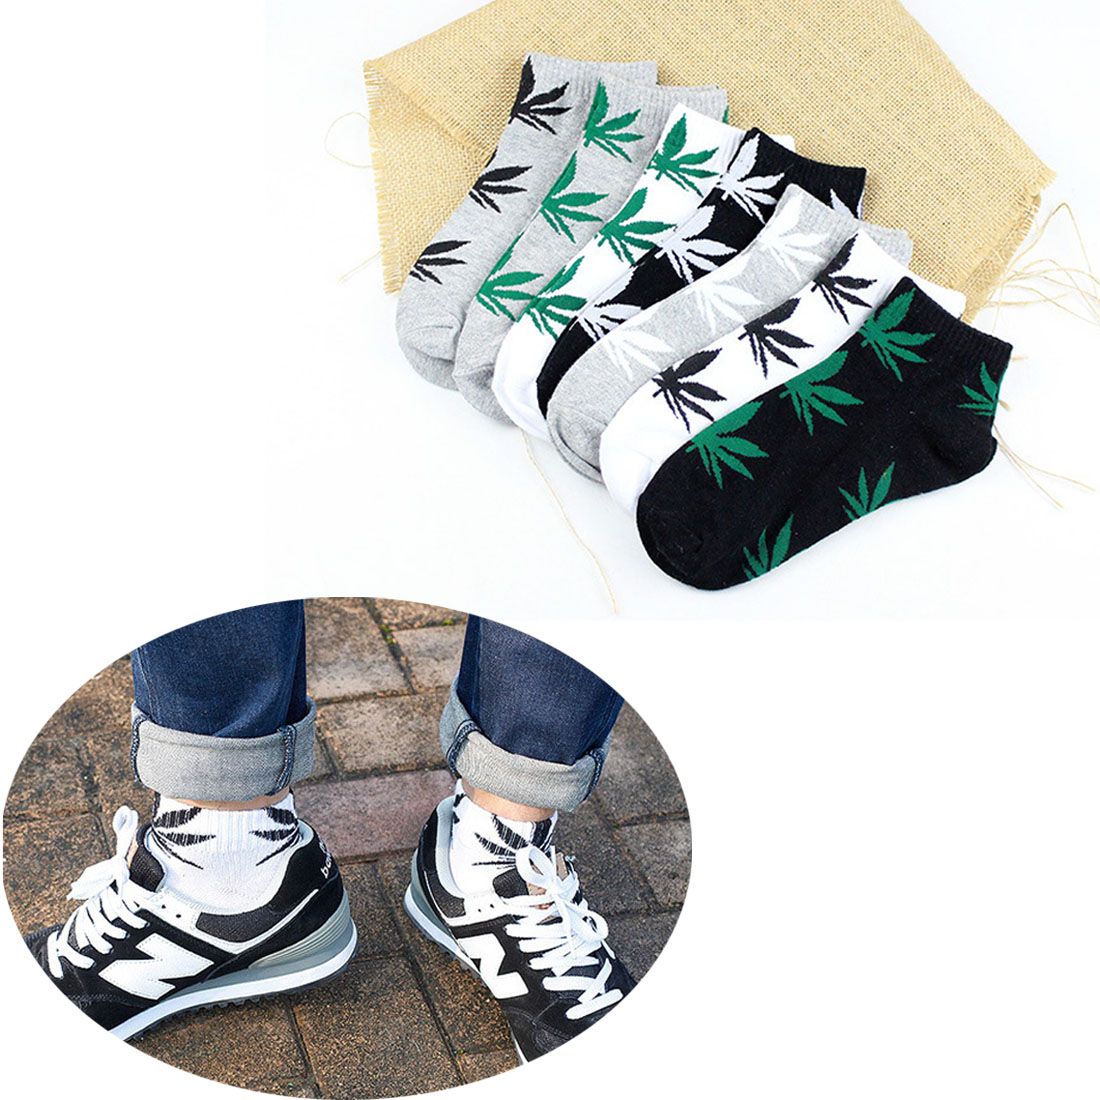 Comfortable Hemp leaf Cotton Youthful Style Men   Socks   Slippers Short Ankle   Socks   Fancinating Ankle   Socks   2019 Fashion New